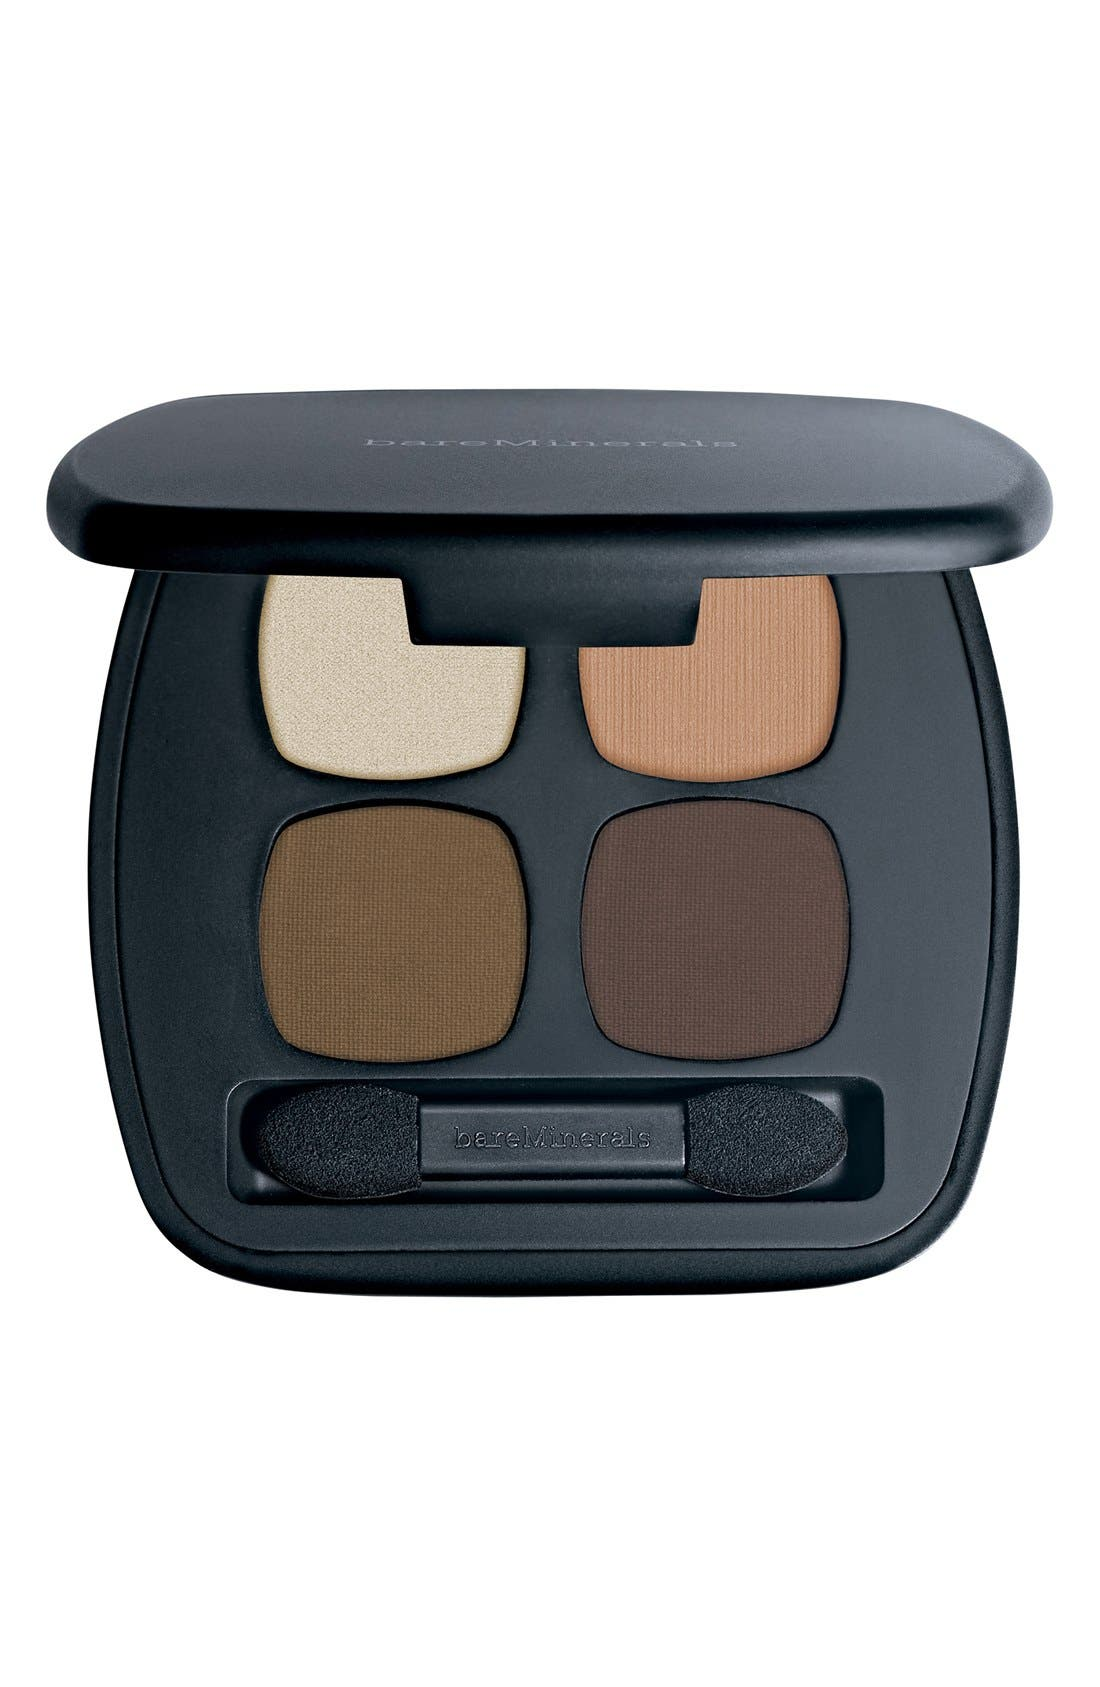 READY 4.0 Eyeshadow Palette, Main, color, 200